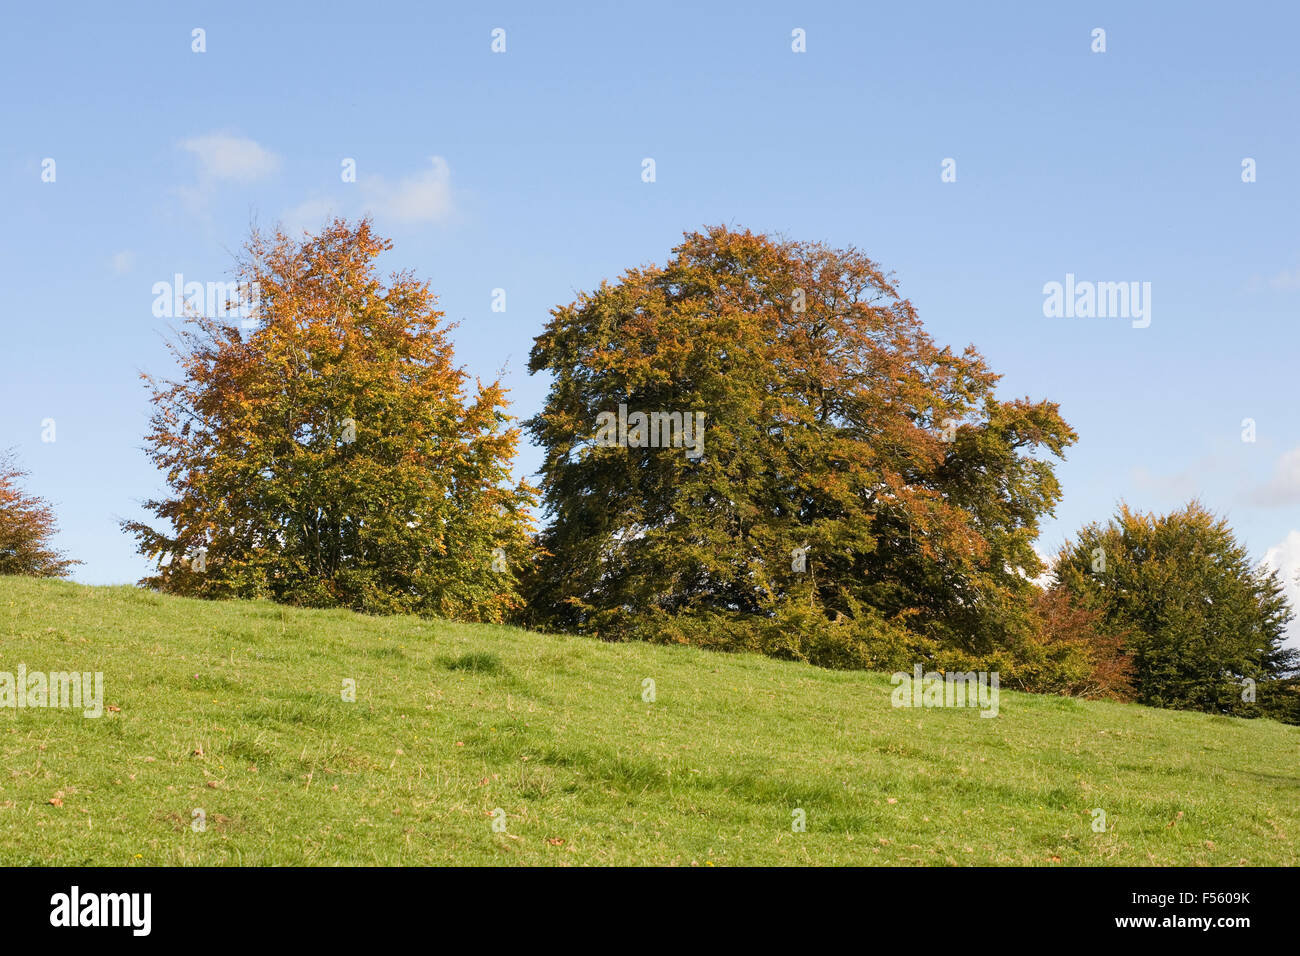 Autumnal trees in the English countryside. - Stock Image